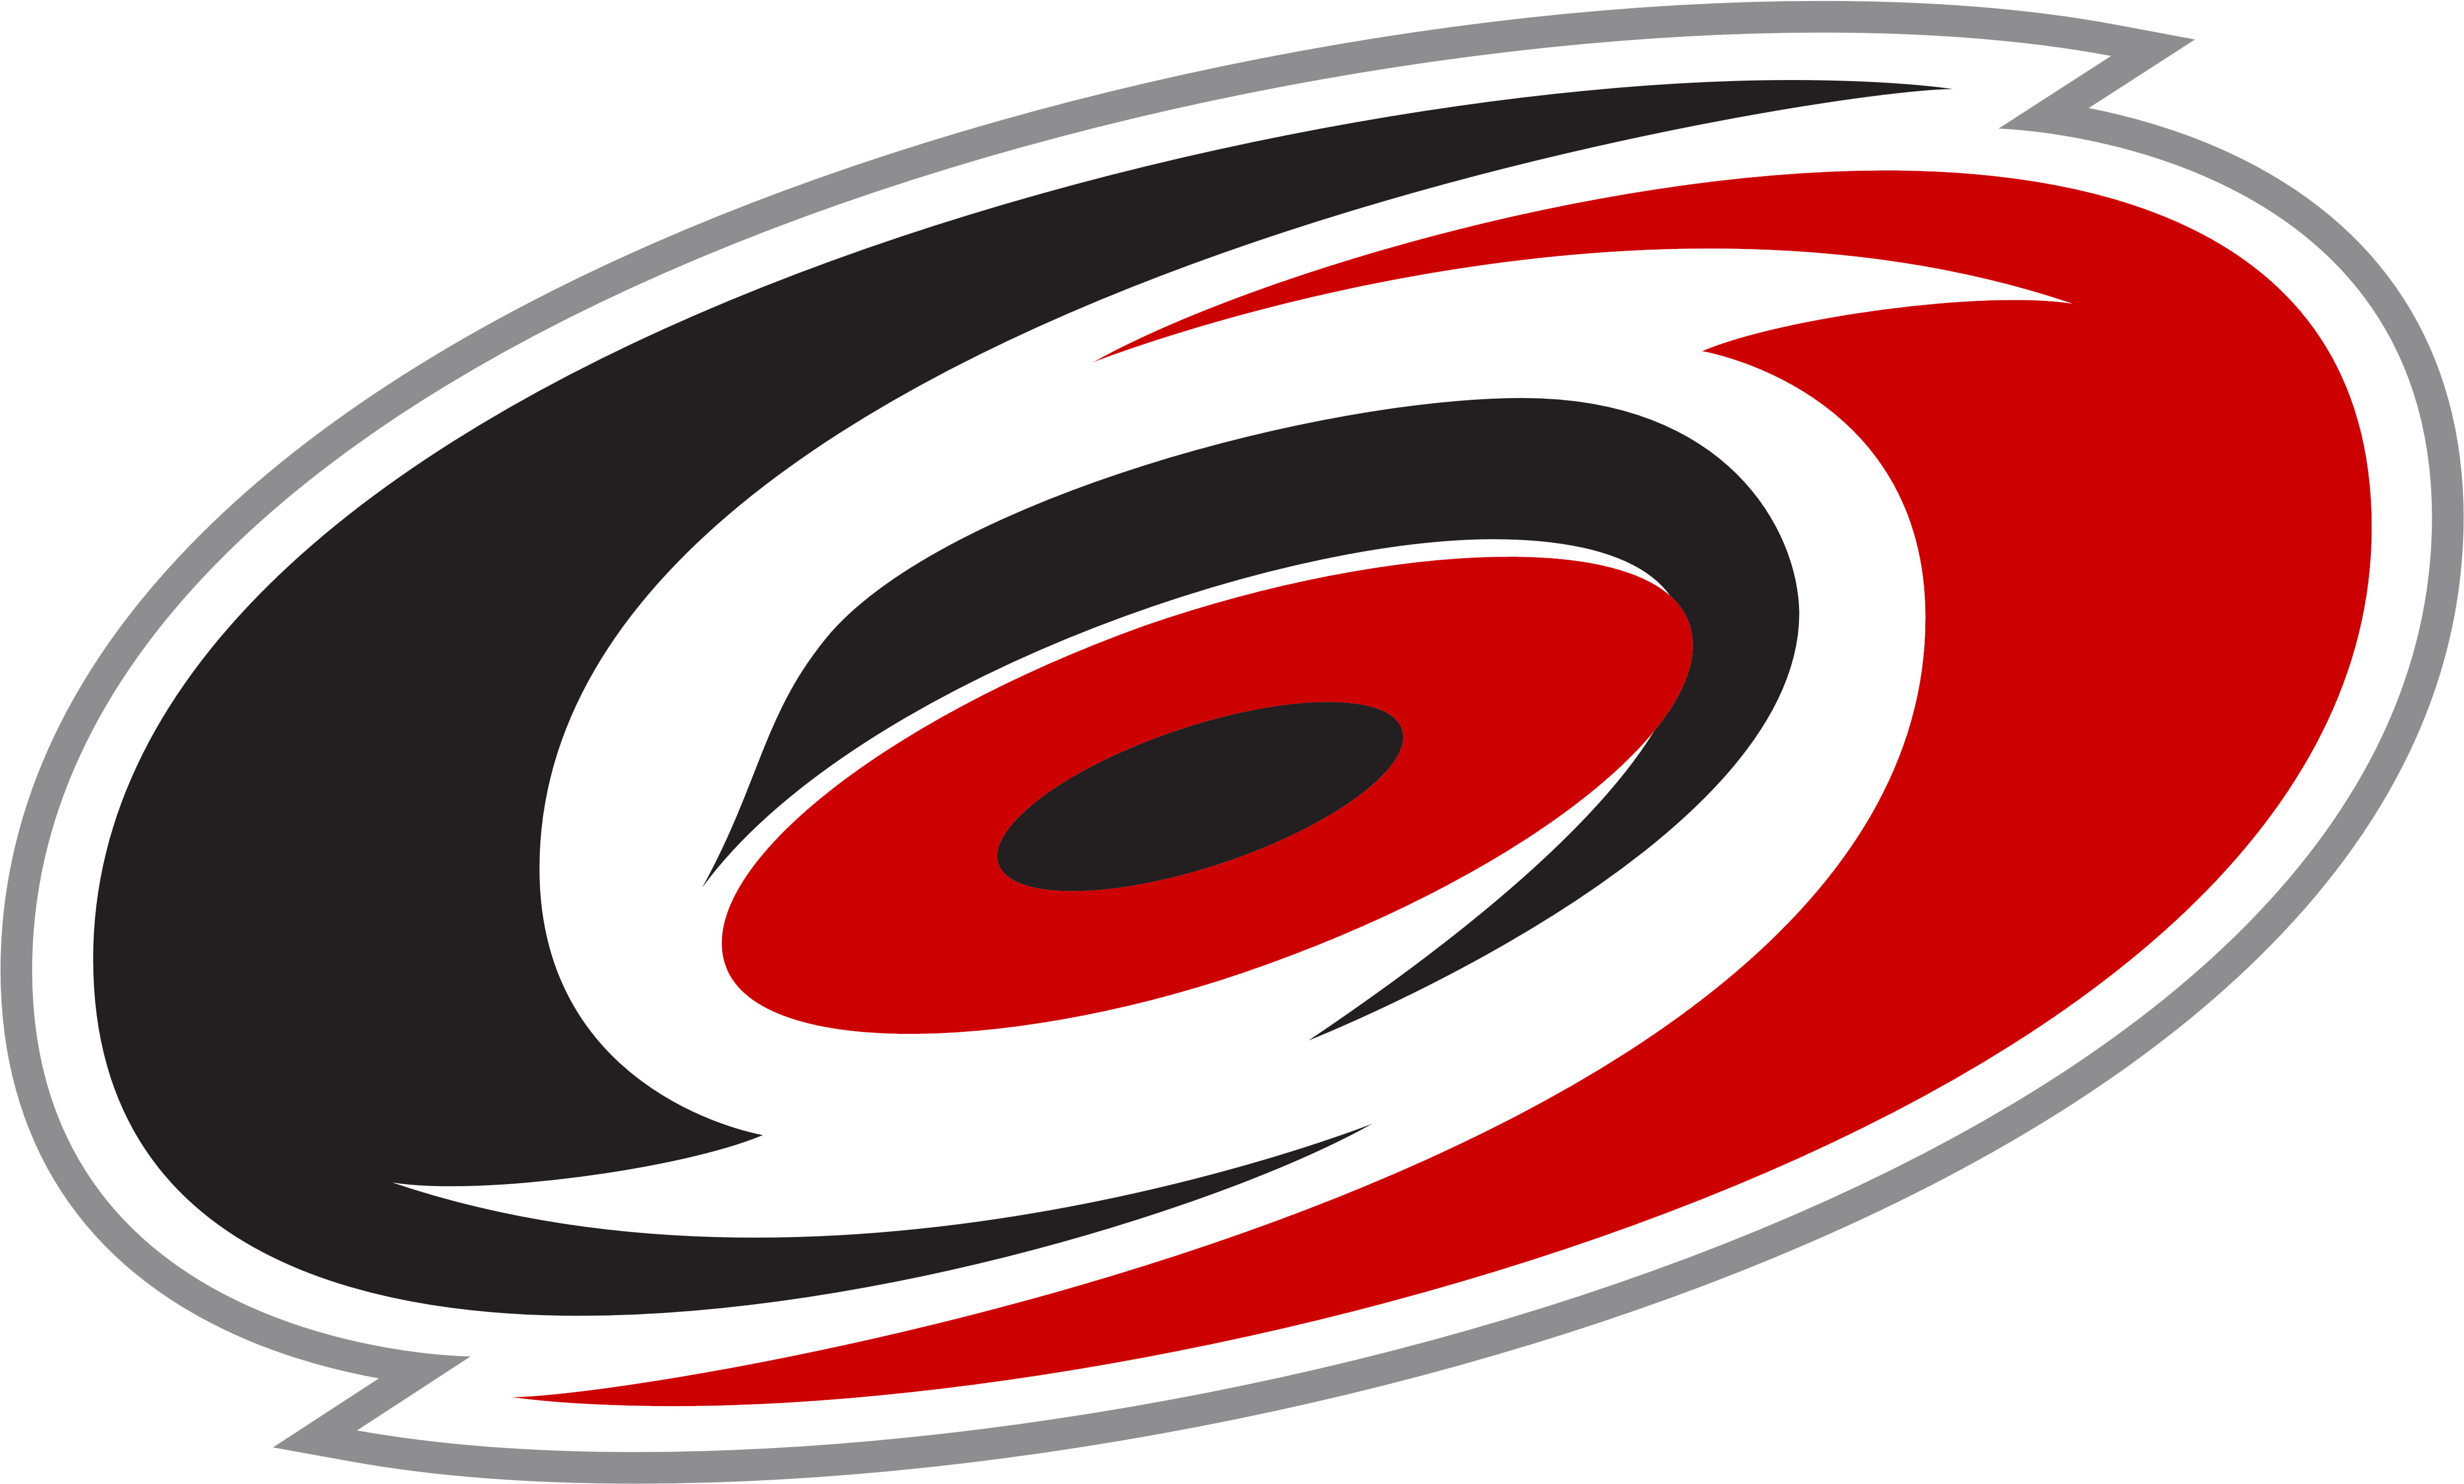 Carolina Hurricanes Logo [eps Nhl] - North Carolina Sports Teams (2000x2000)